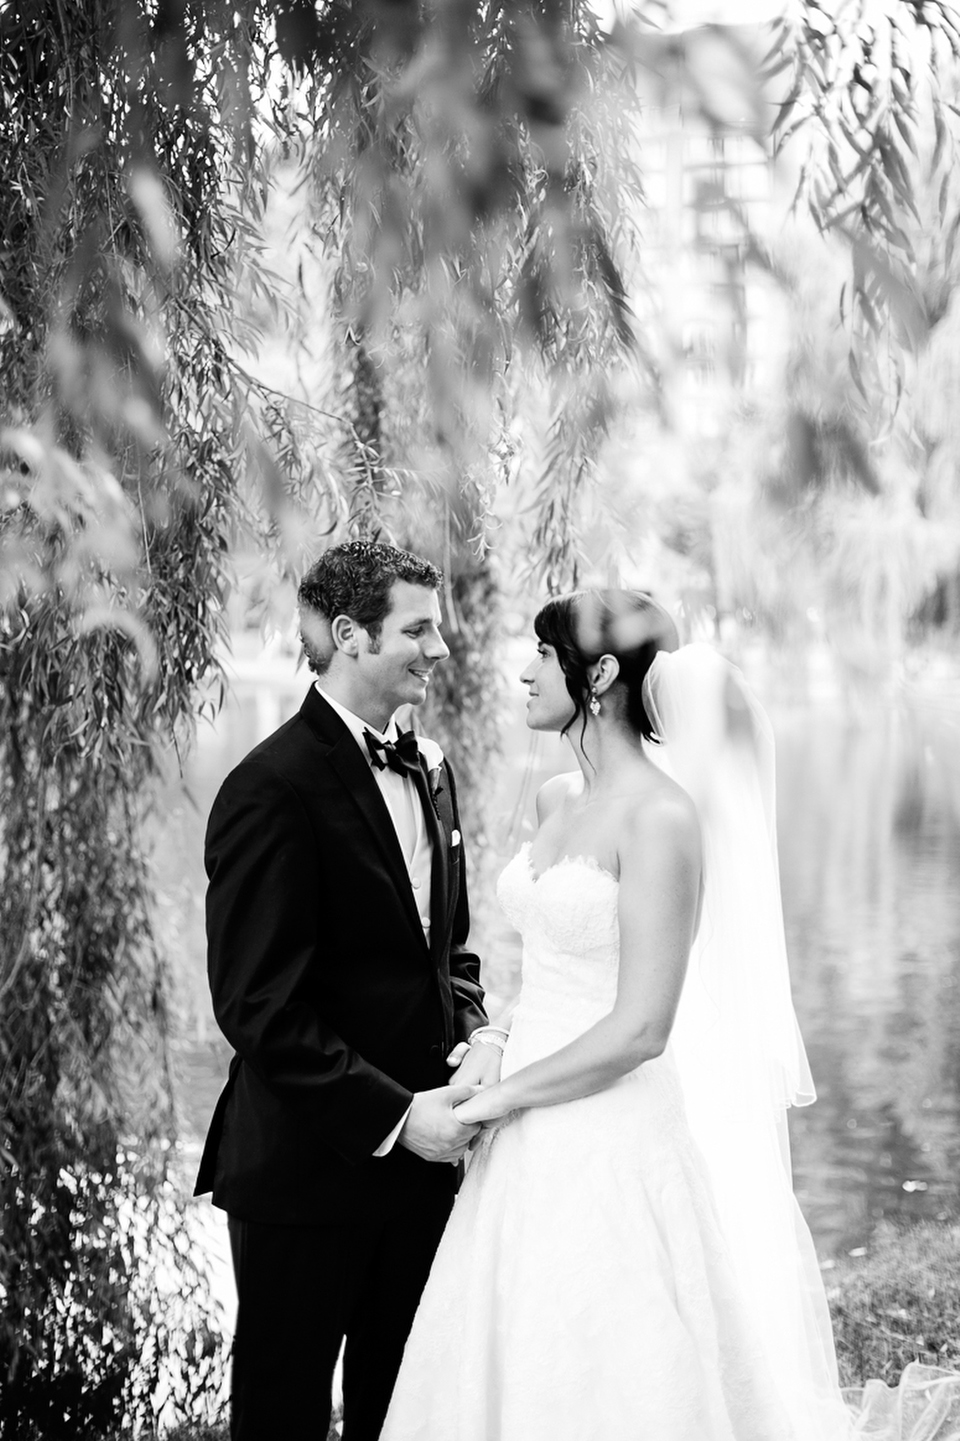 A black and white outdoor wedding portrait of the bride and groom in Boston, MA.